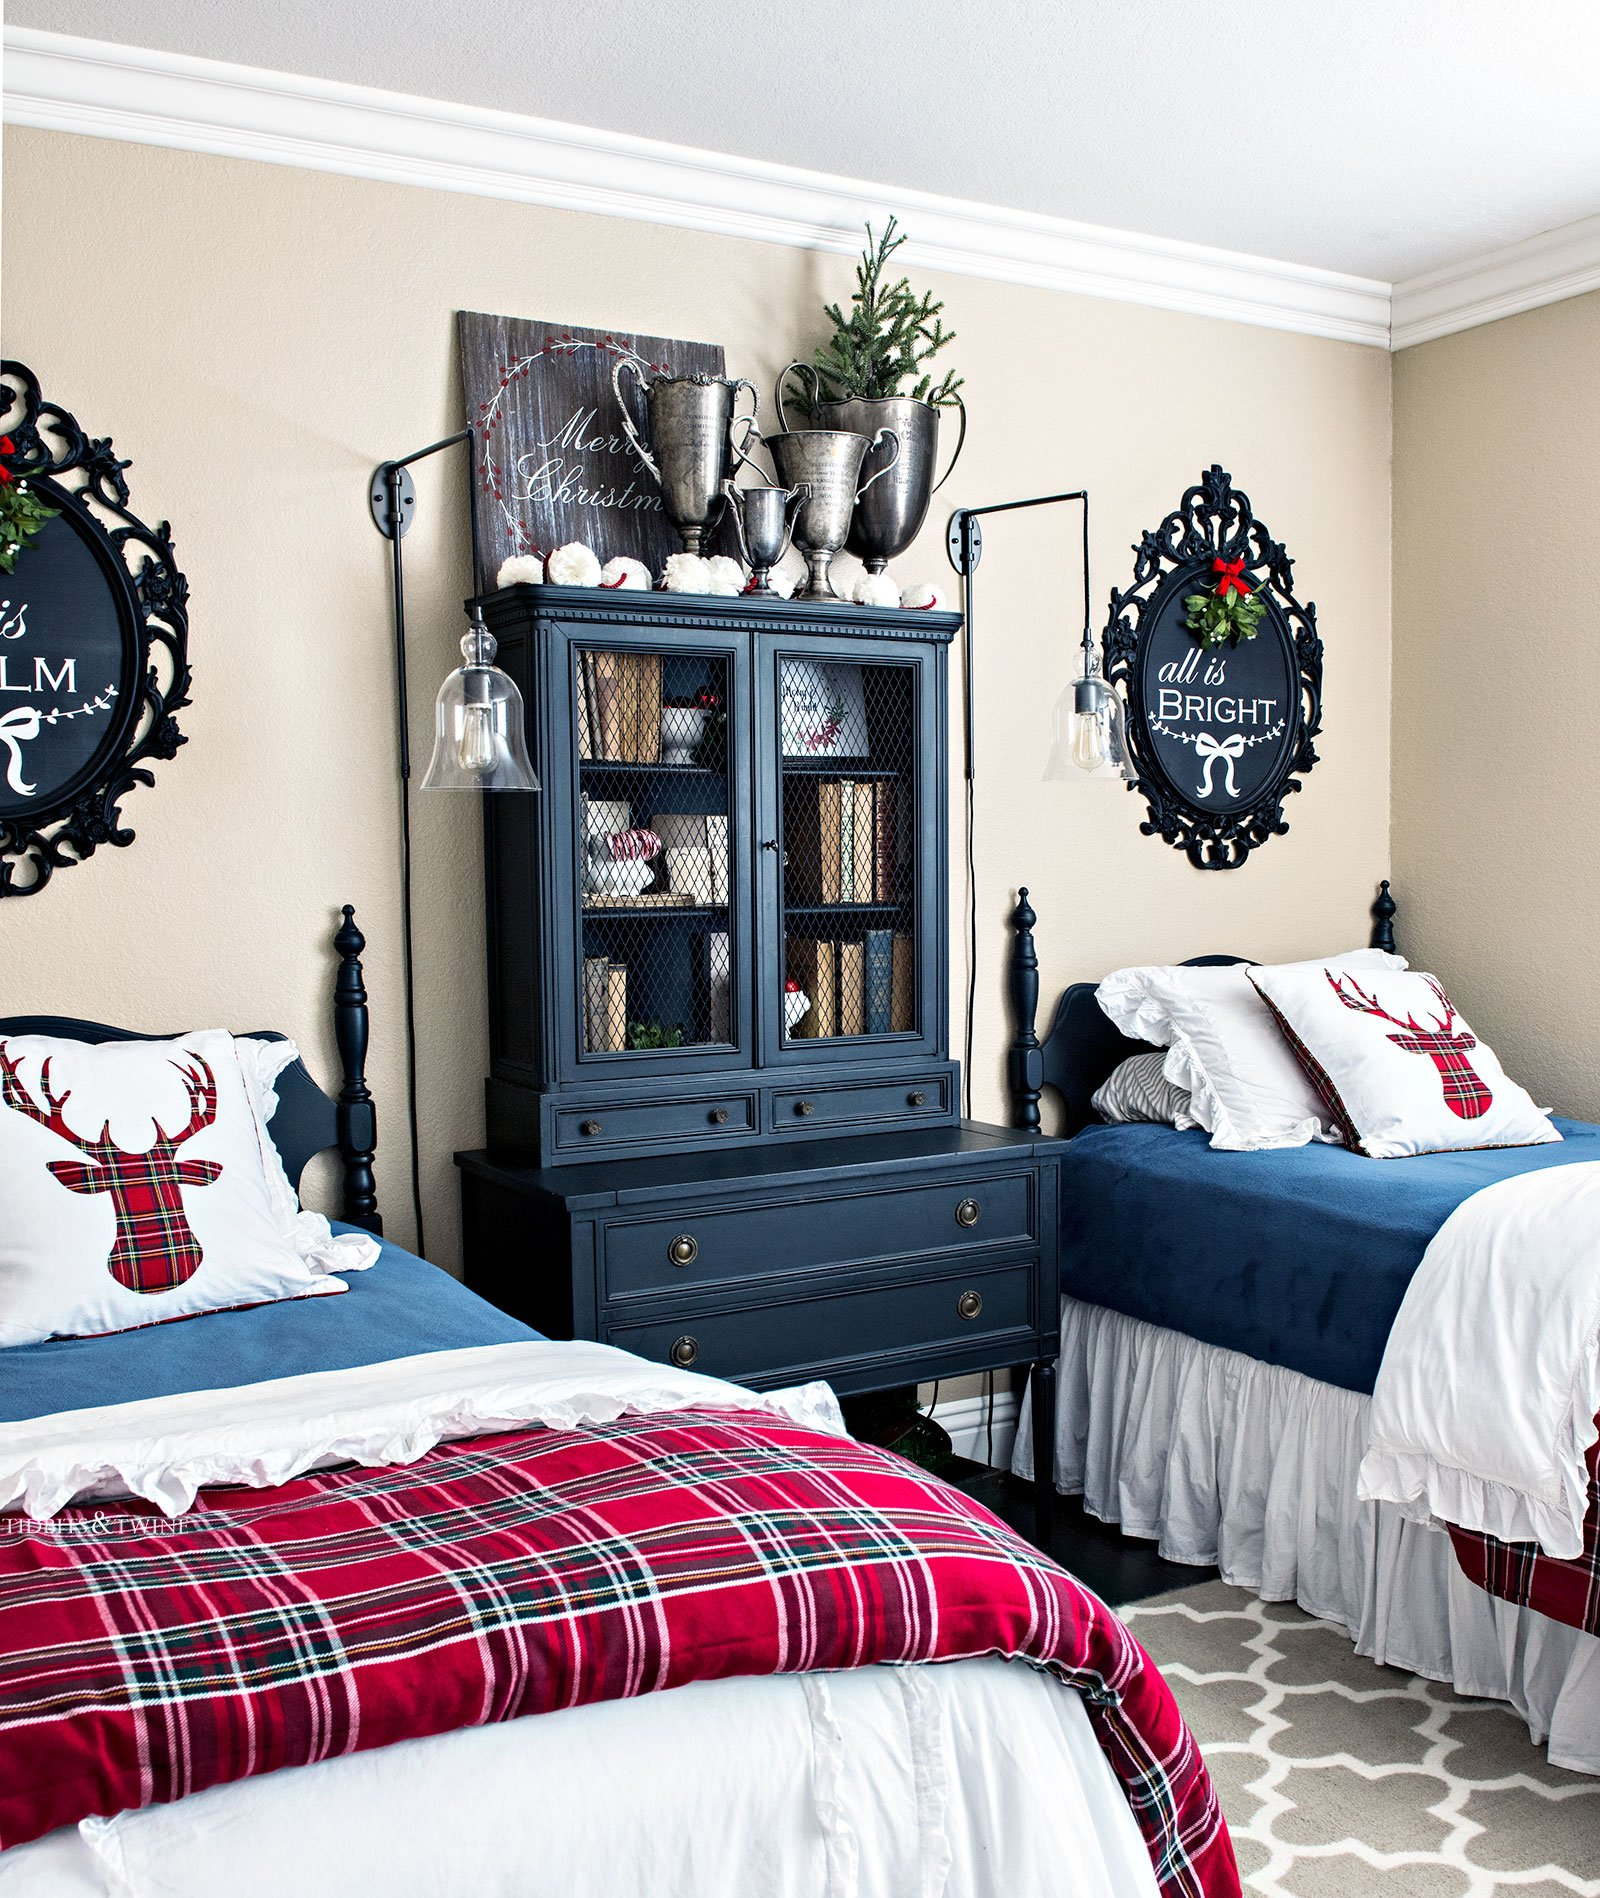 Best Bedroom Colors: Christmas Tour Of The Guest Bedroom